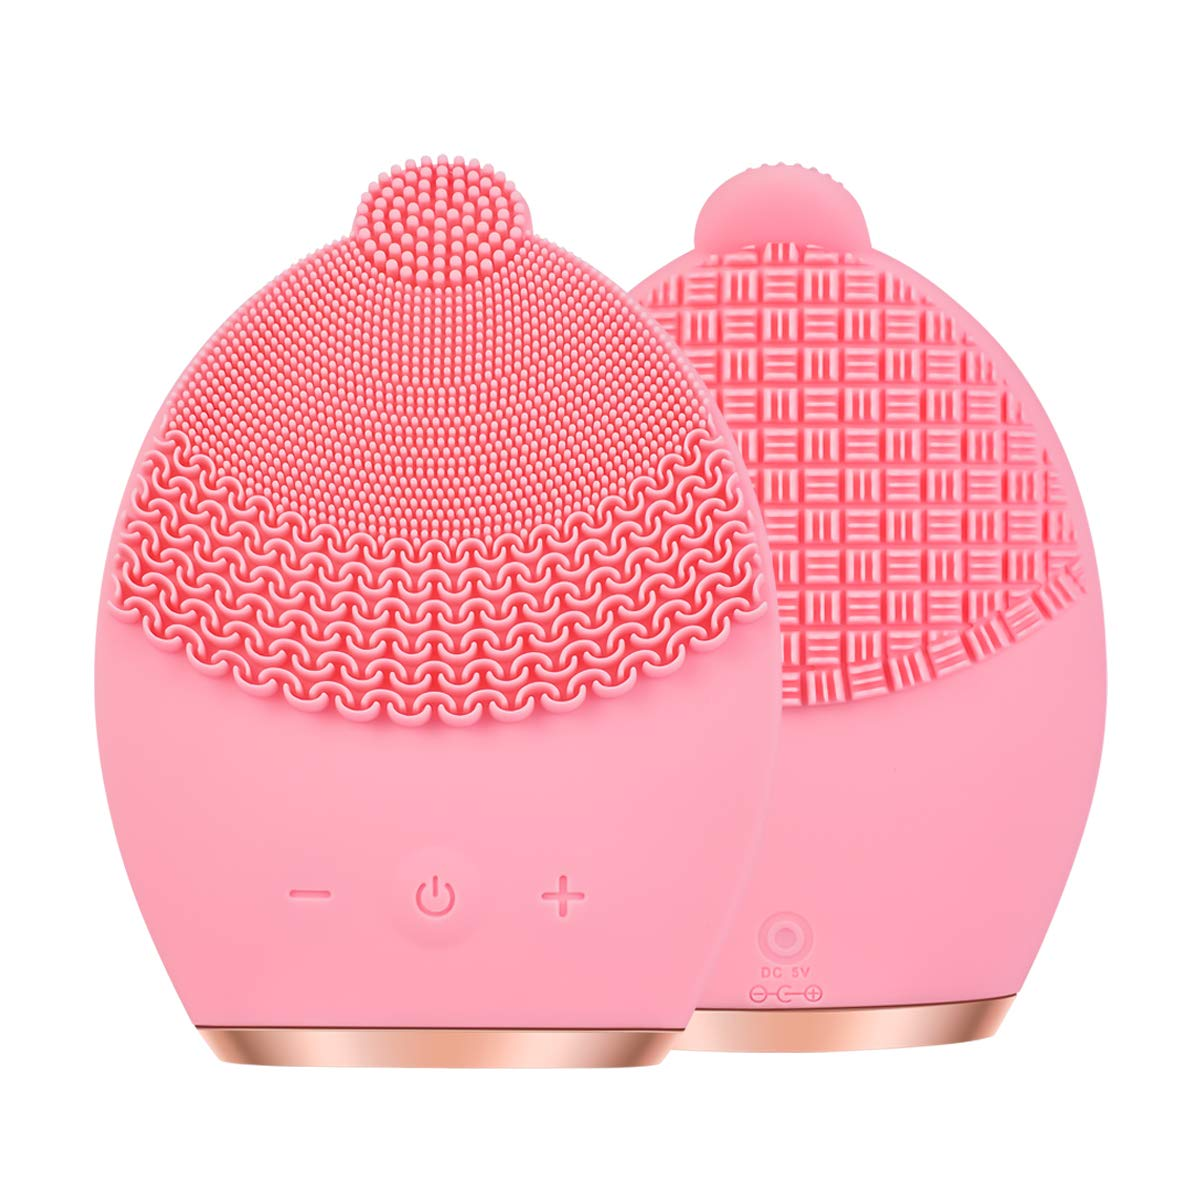 Sonic Facial Cleansing Brush, Rechargeable Silicone Face Brush - Face Massager - Exfoliate Smooth Skin for a Radiant Clear Complexion by CNAIER